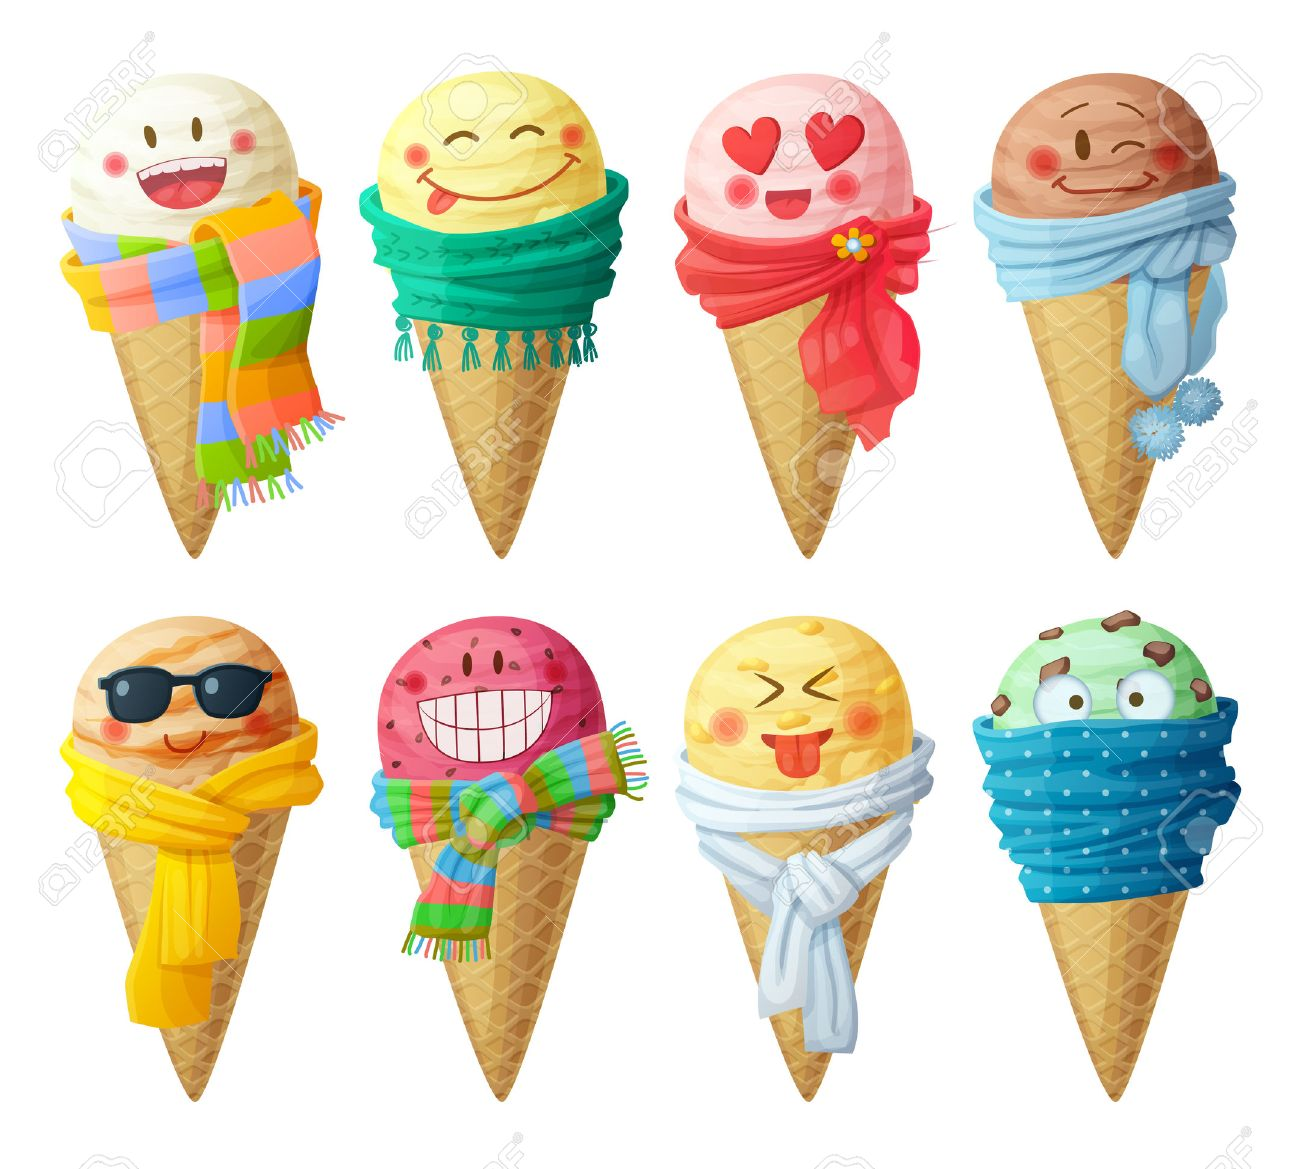 Set of cartoon vector icons isolated on white background. Ice cream scoops characters. Funny faces with scarf, smiling - 60381413